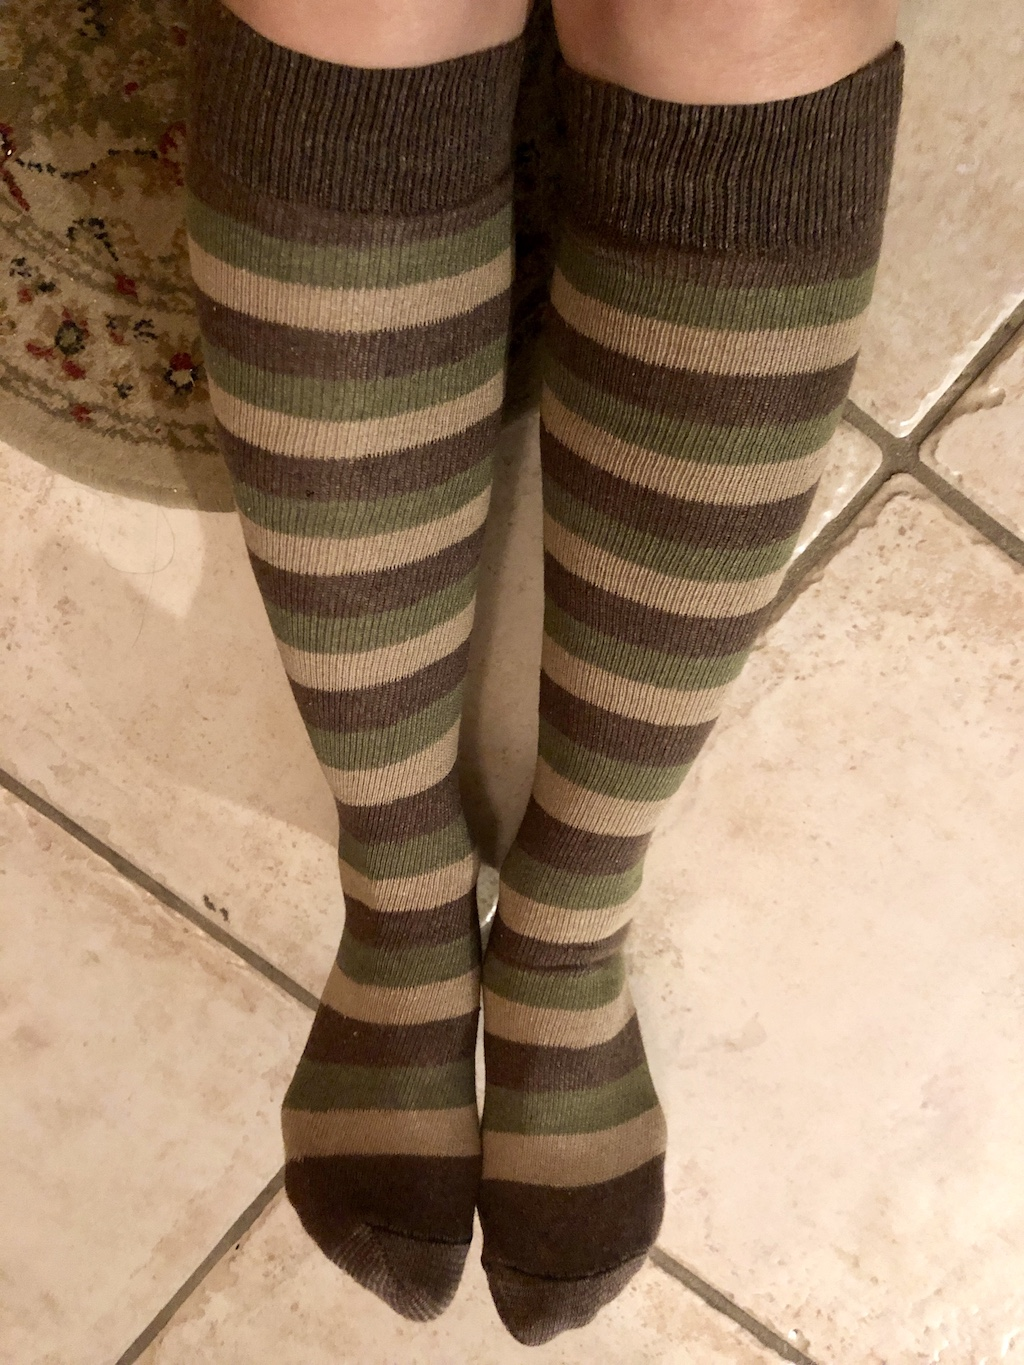 Fun with Chrissy's Socks: Just in time for Halloween! 1